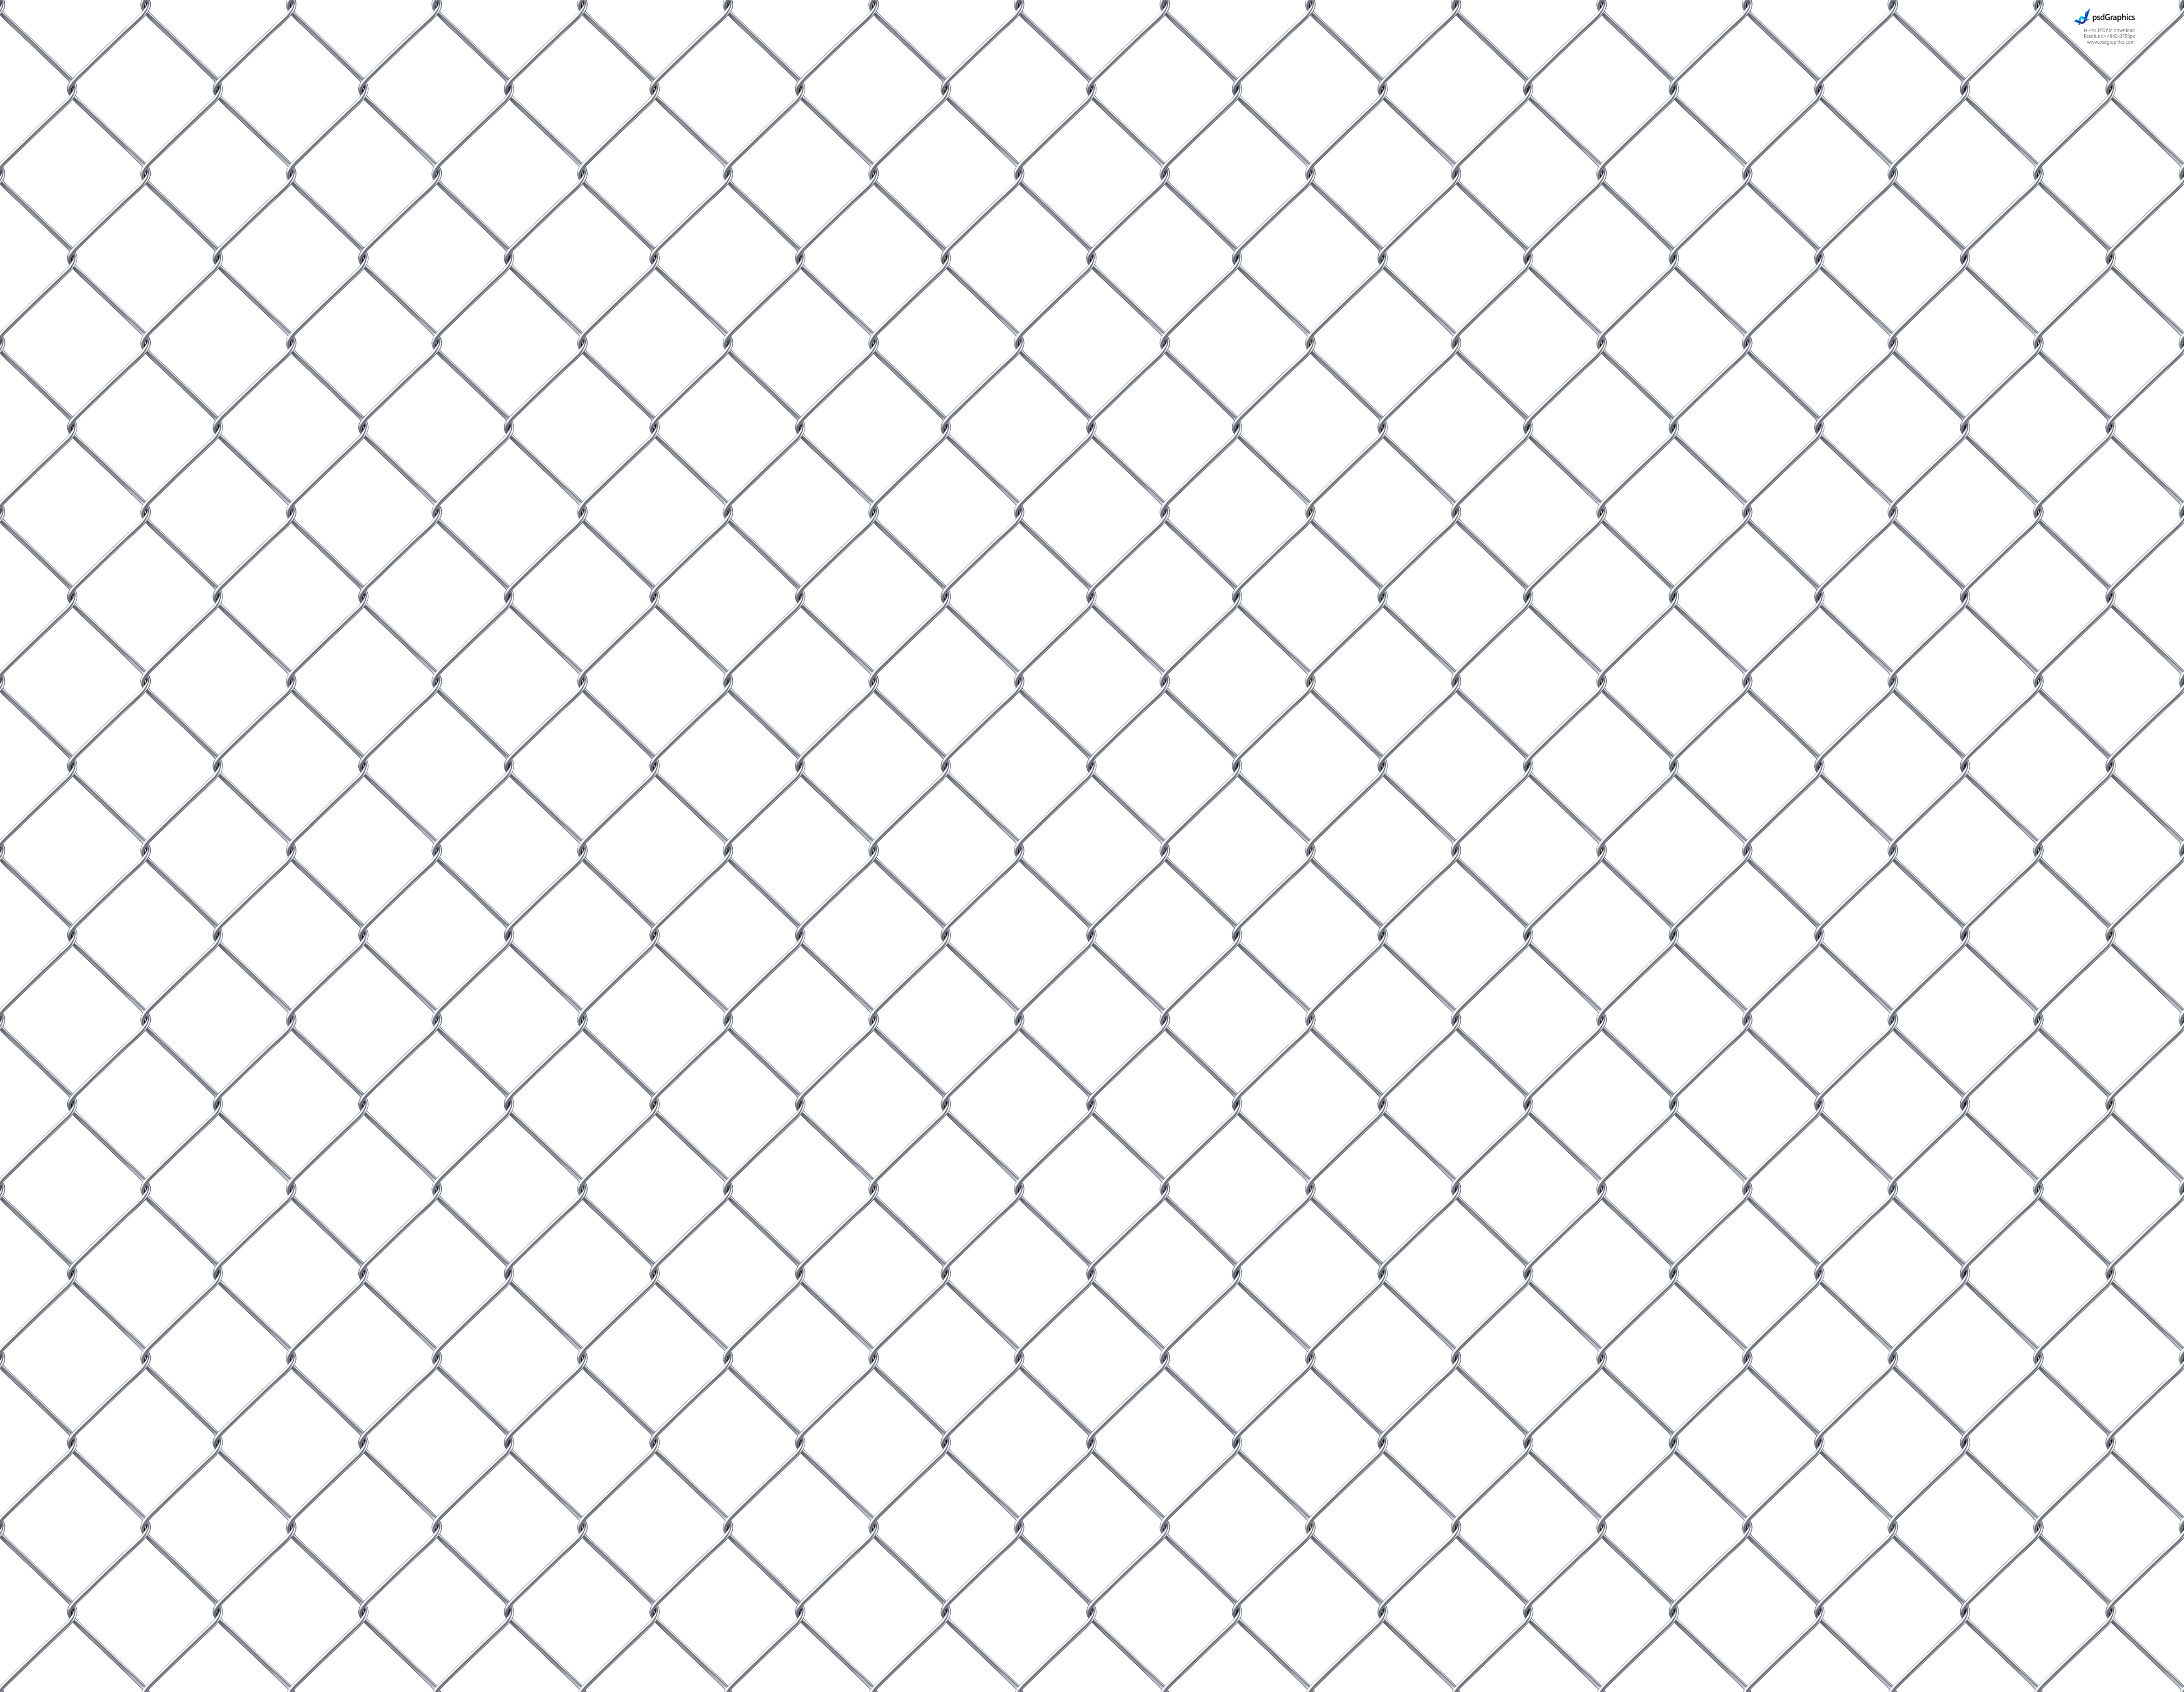 12 Chain-Link Fence PSD Images